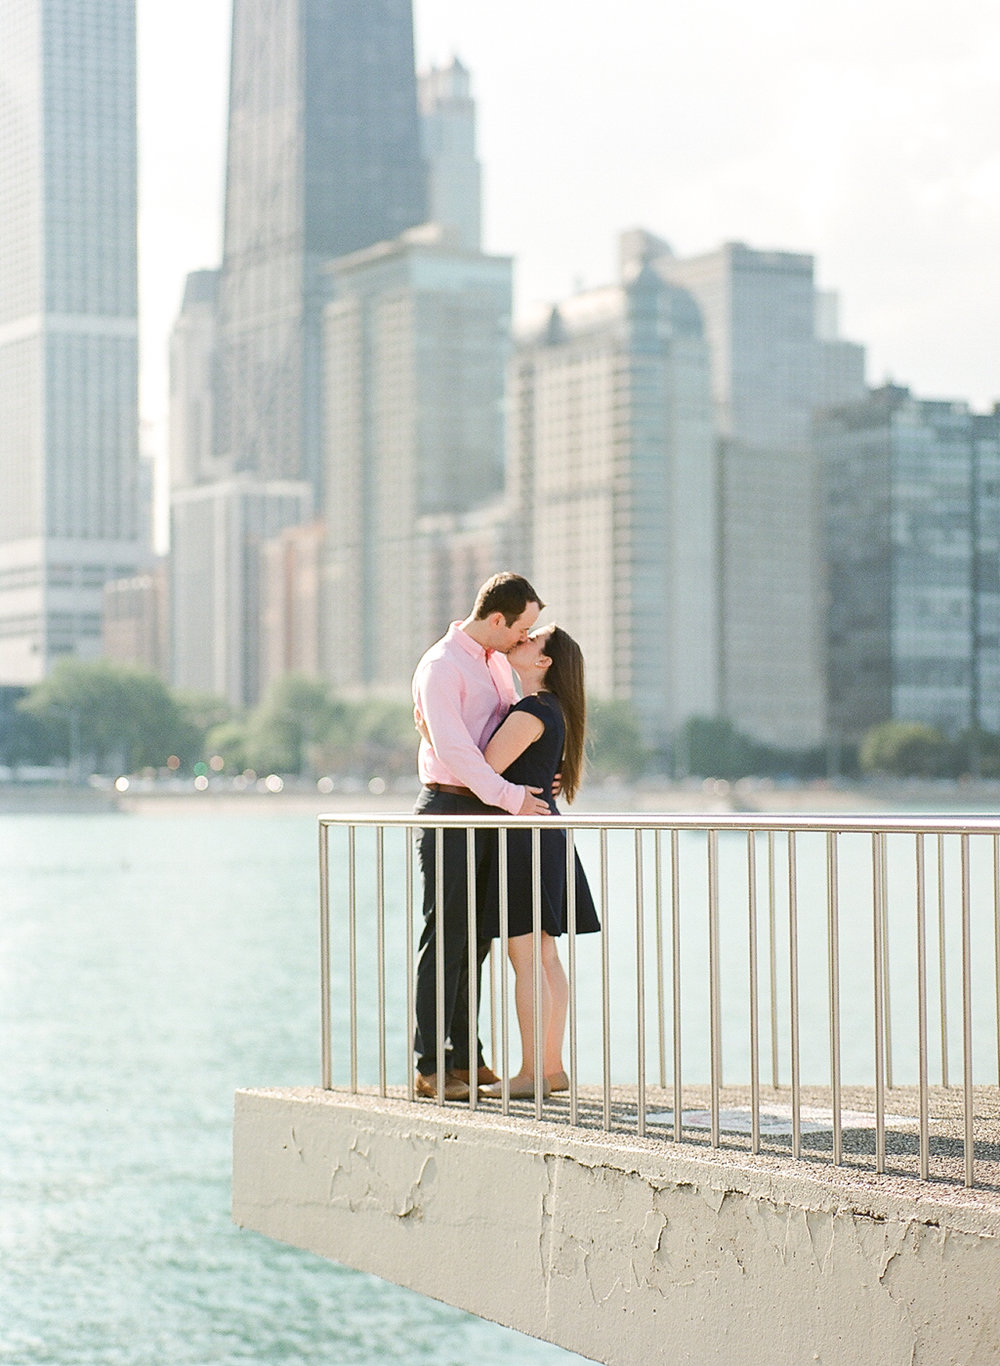 Bonphotage Chicago Fine Art Beach Engagement Photography